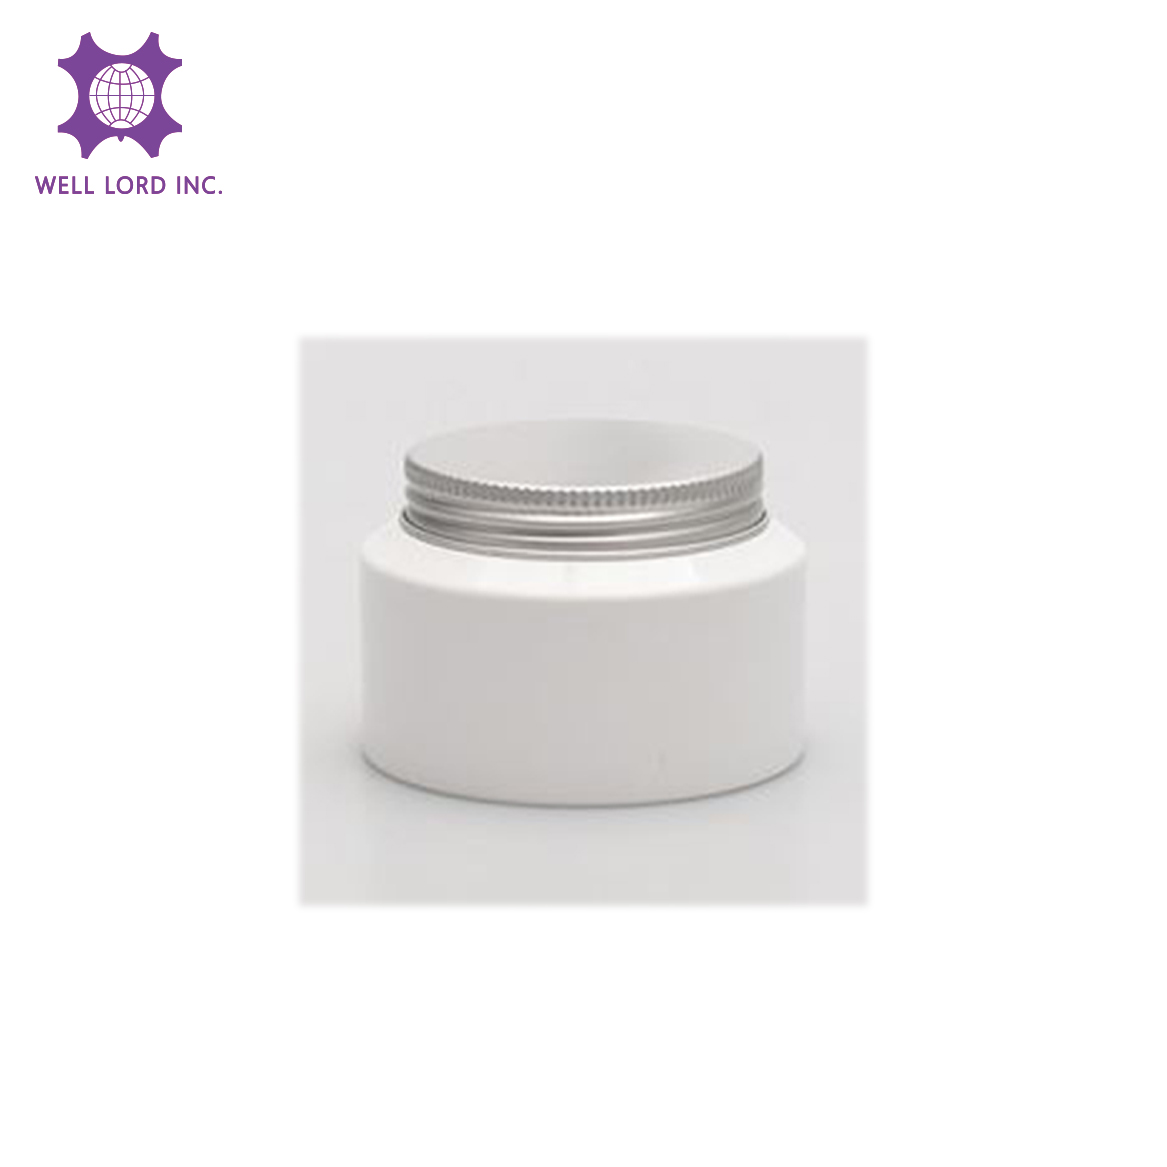 Water drop hydrating moisture boost daily moisture cream plastic jar container cosmetic plastic jars with lids